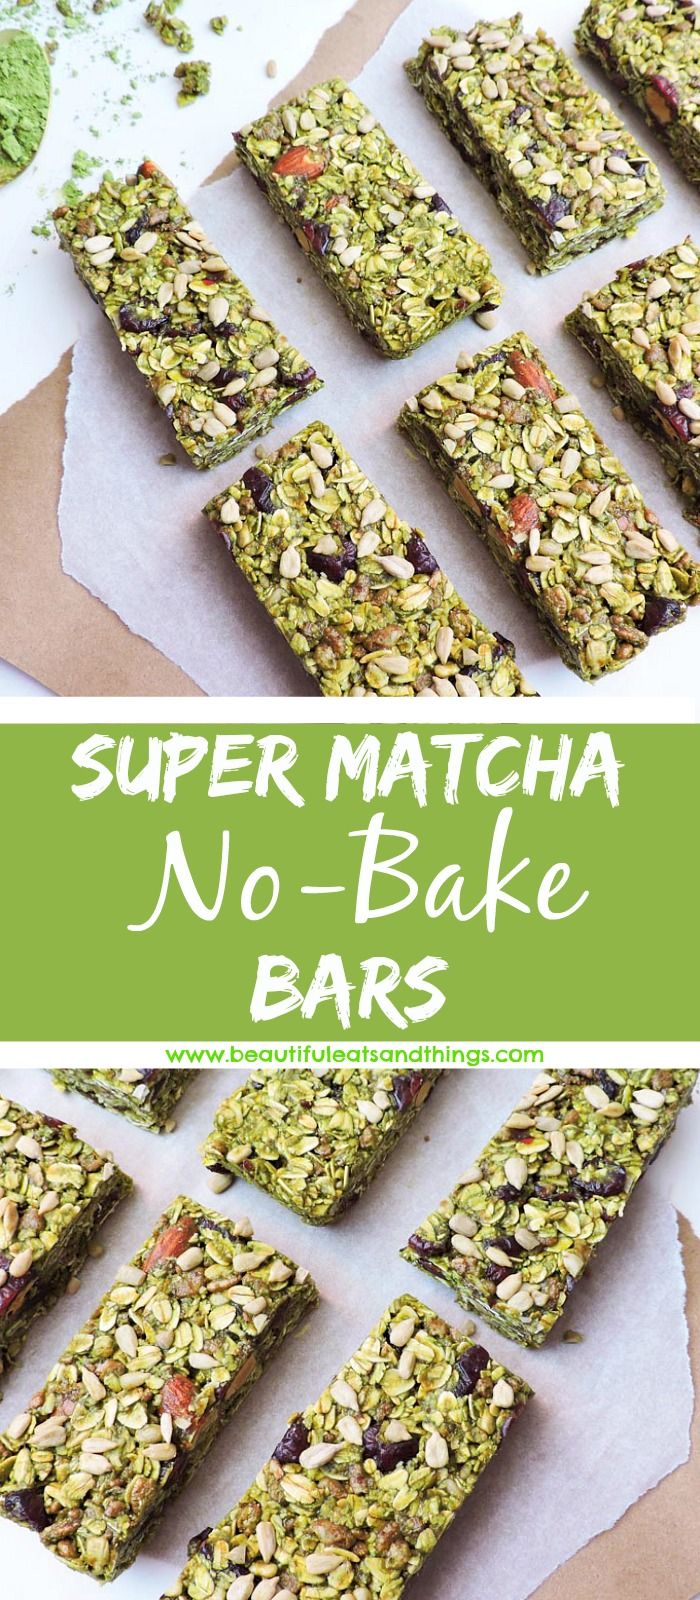 No Bake Super Matcha Bars